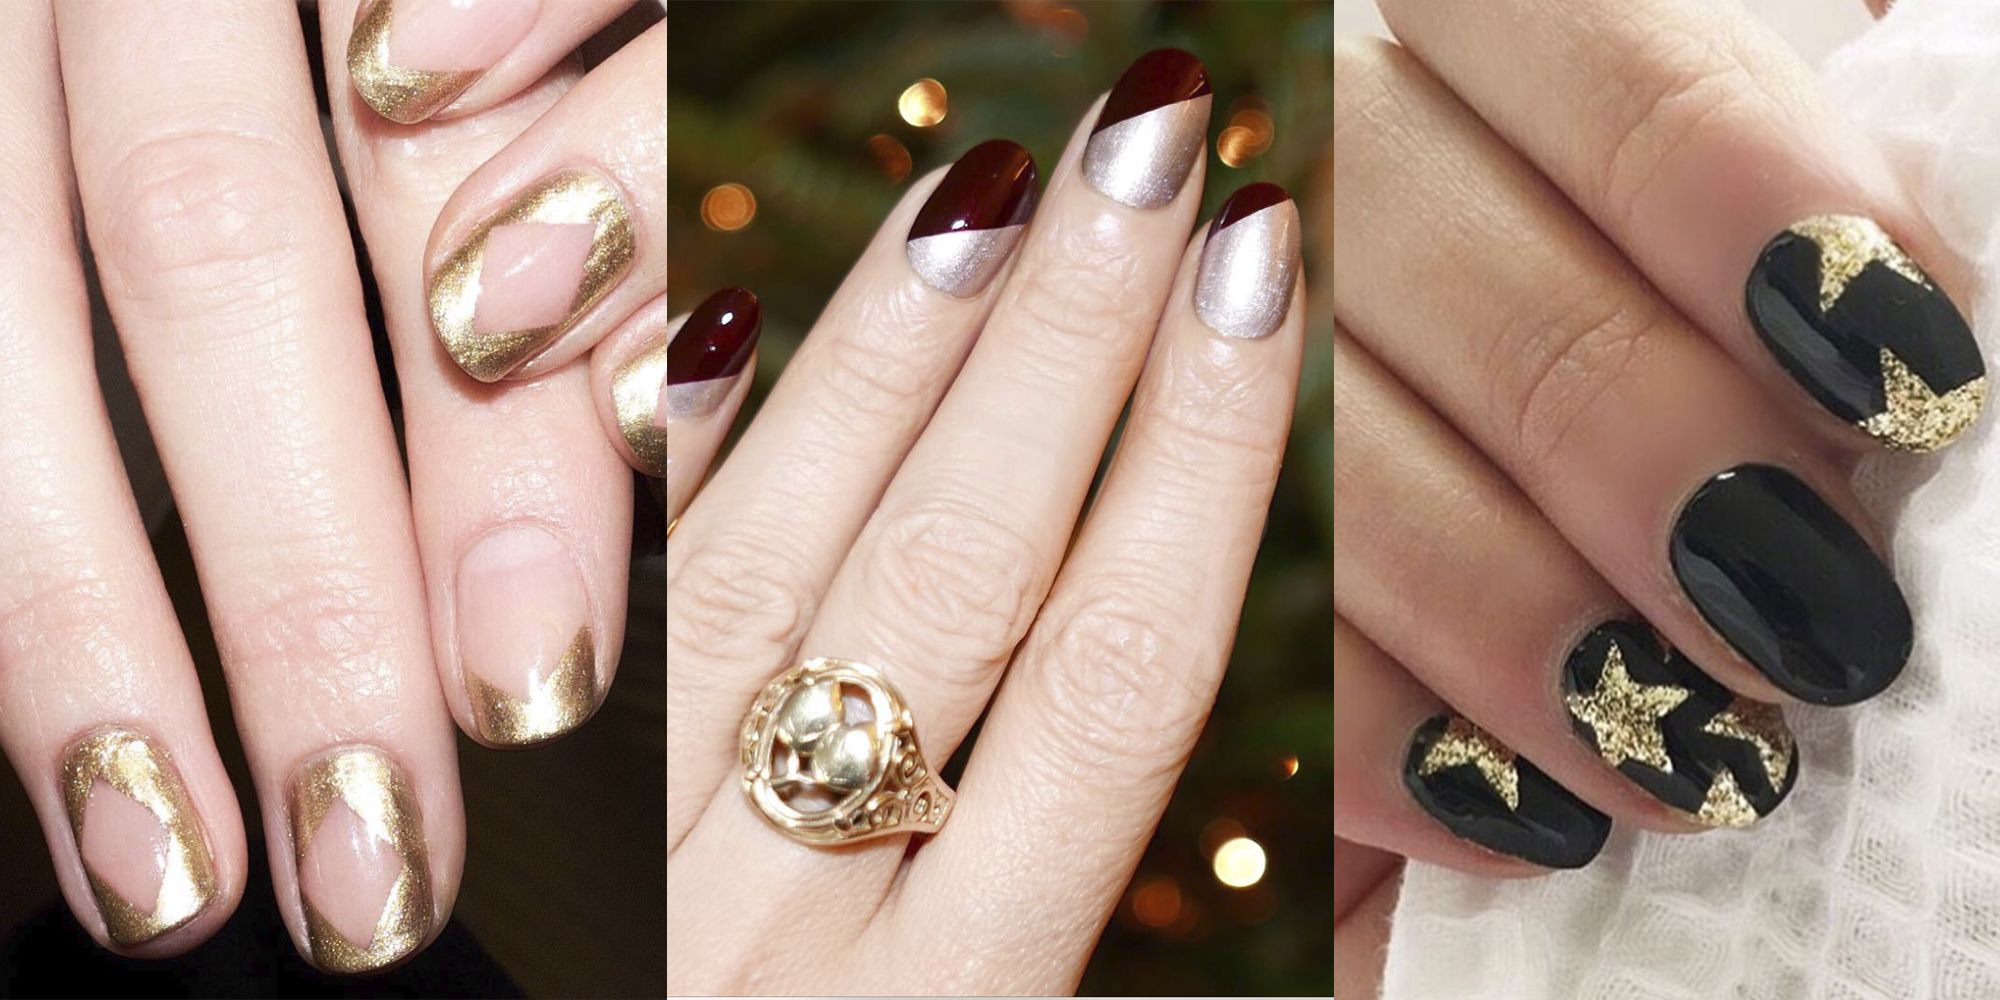 20 Glitter Nail Designs For A Sparkly Shiny Shimmery Manicure